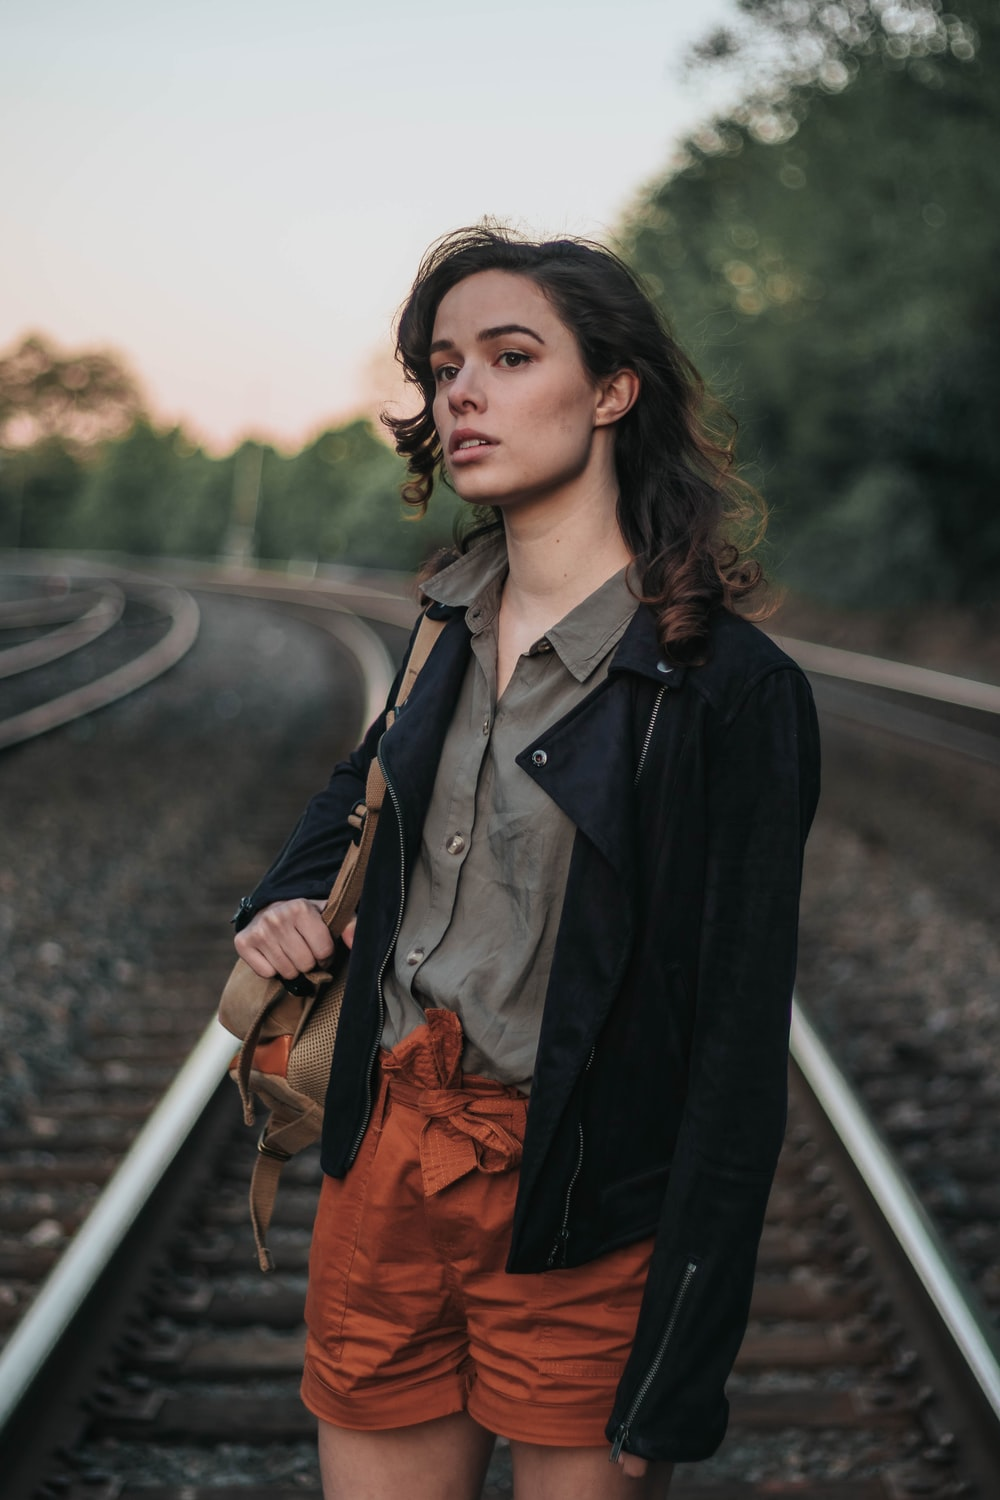 woman standing in the middle of railway